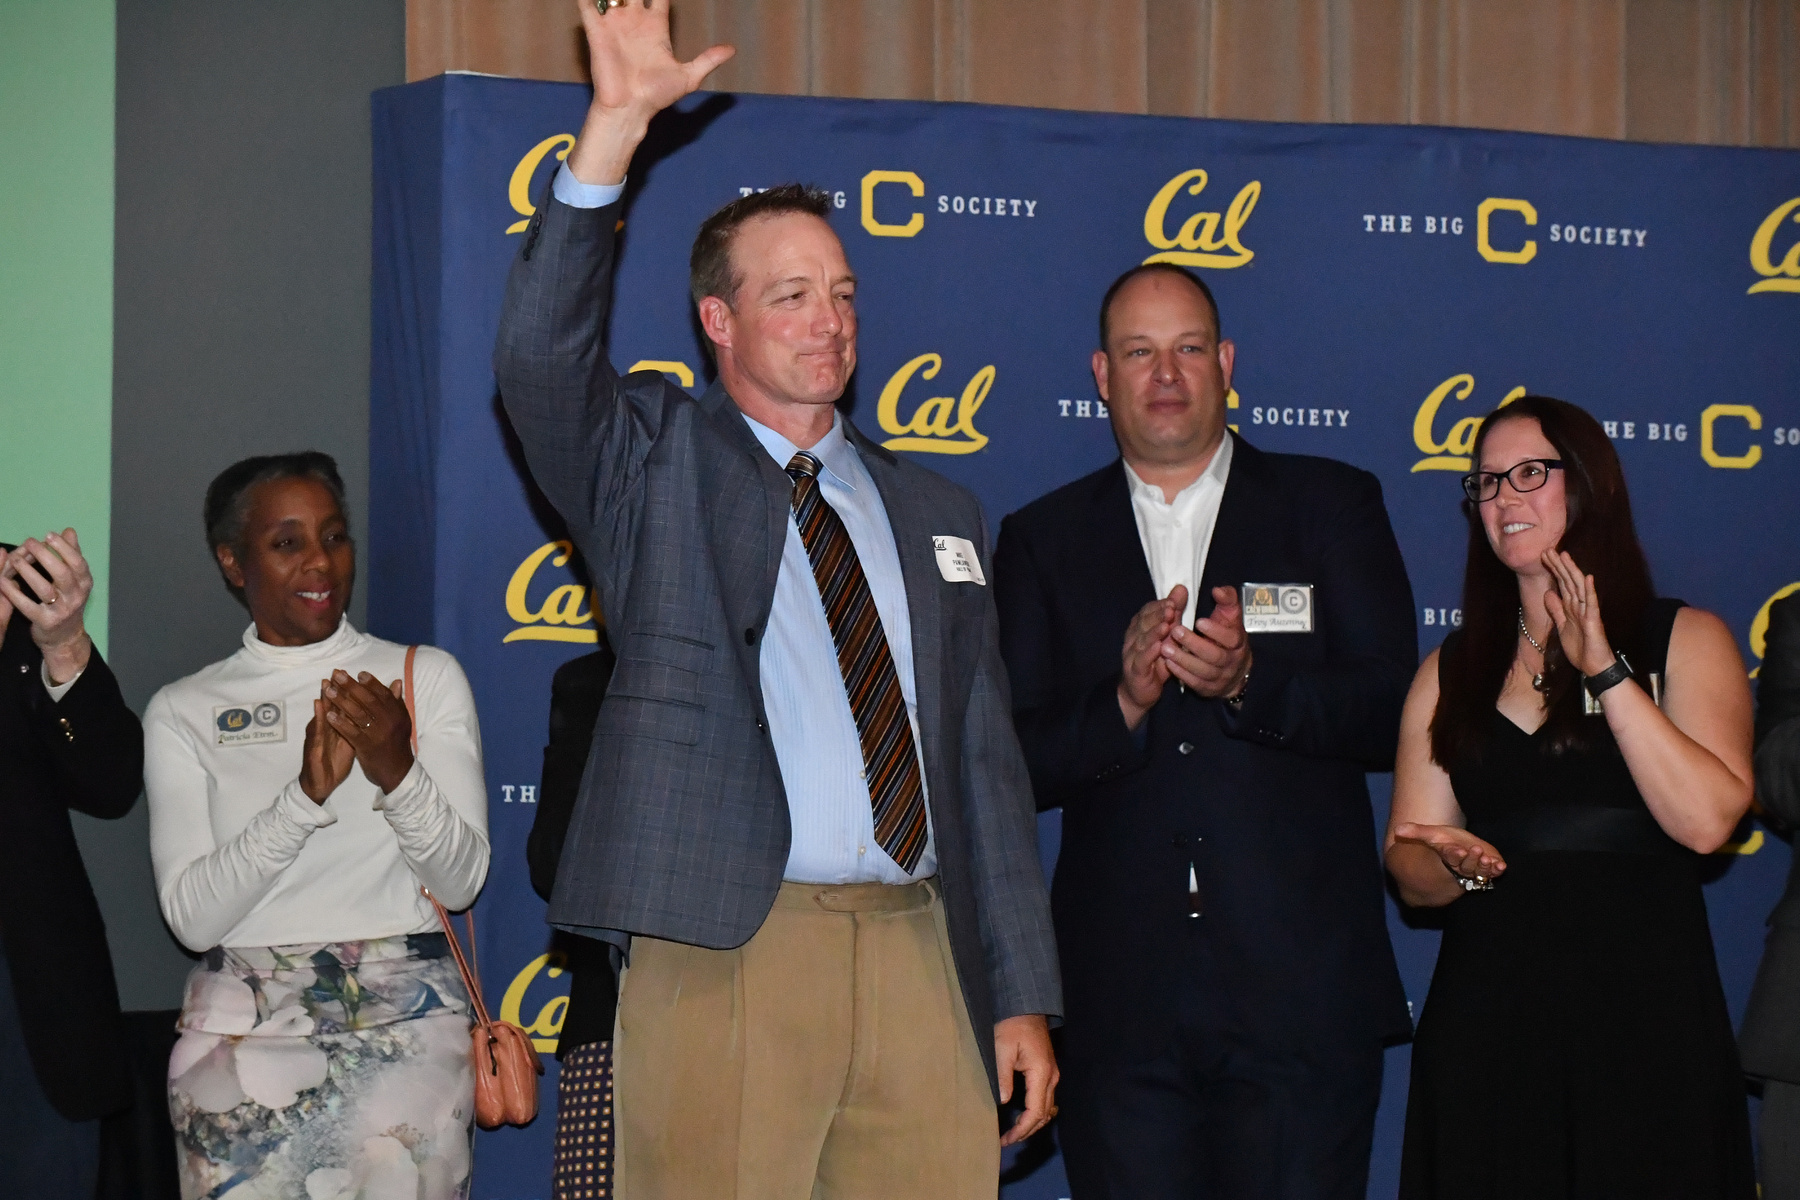 2018 Cal Hall of Fame ceremony _20181026_190748_MarcusE-(ZF-0861-35620-1-081).jpg